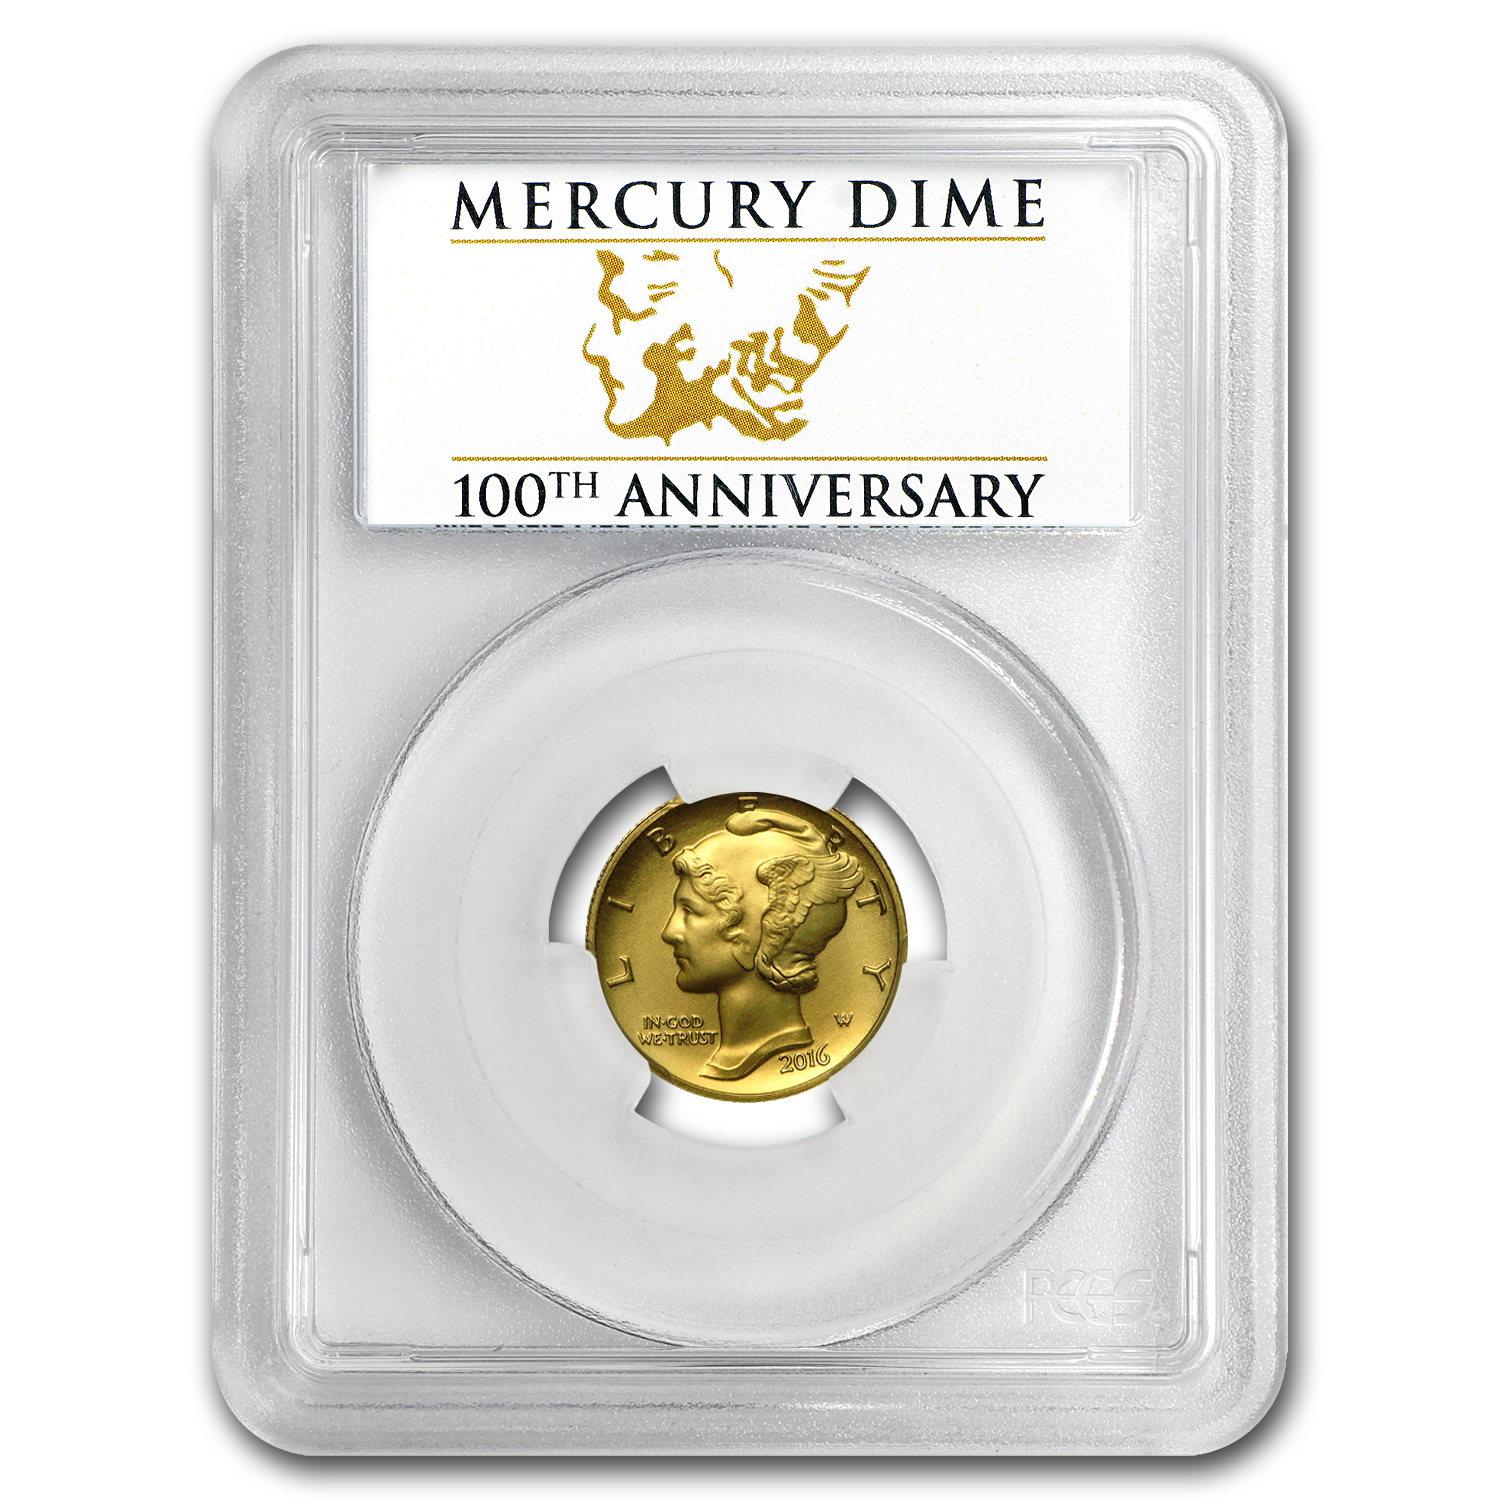 2016-W Gold Mercury Dime SP-70 PCGS (FS) Centennial Label